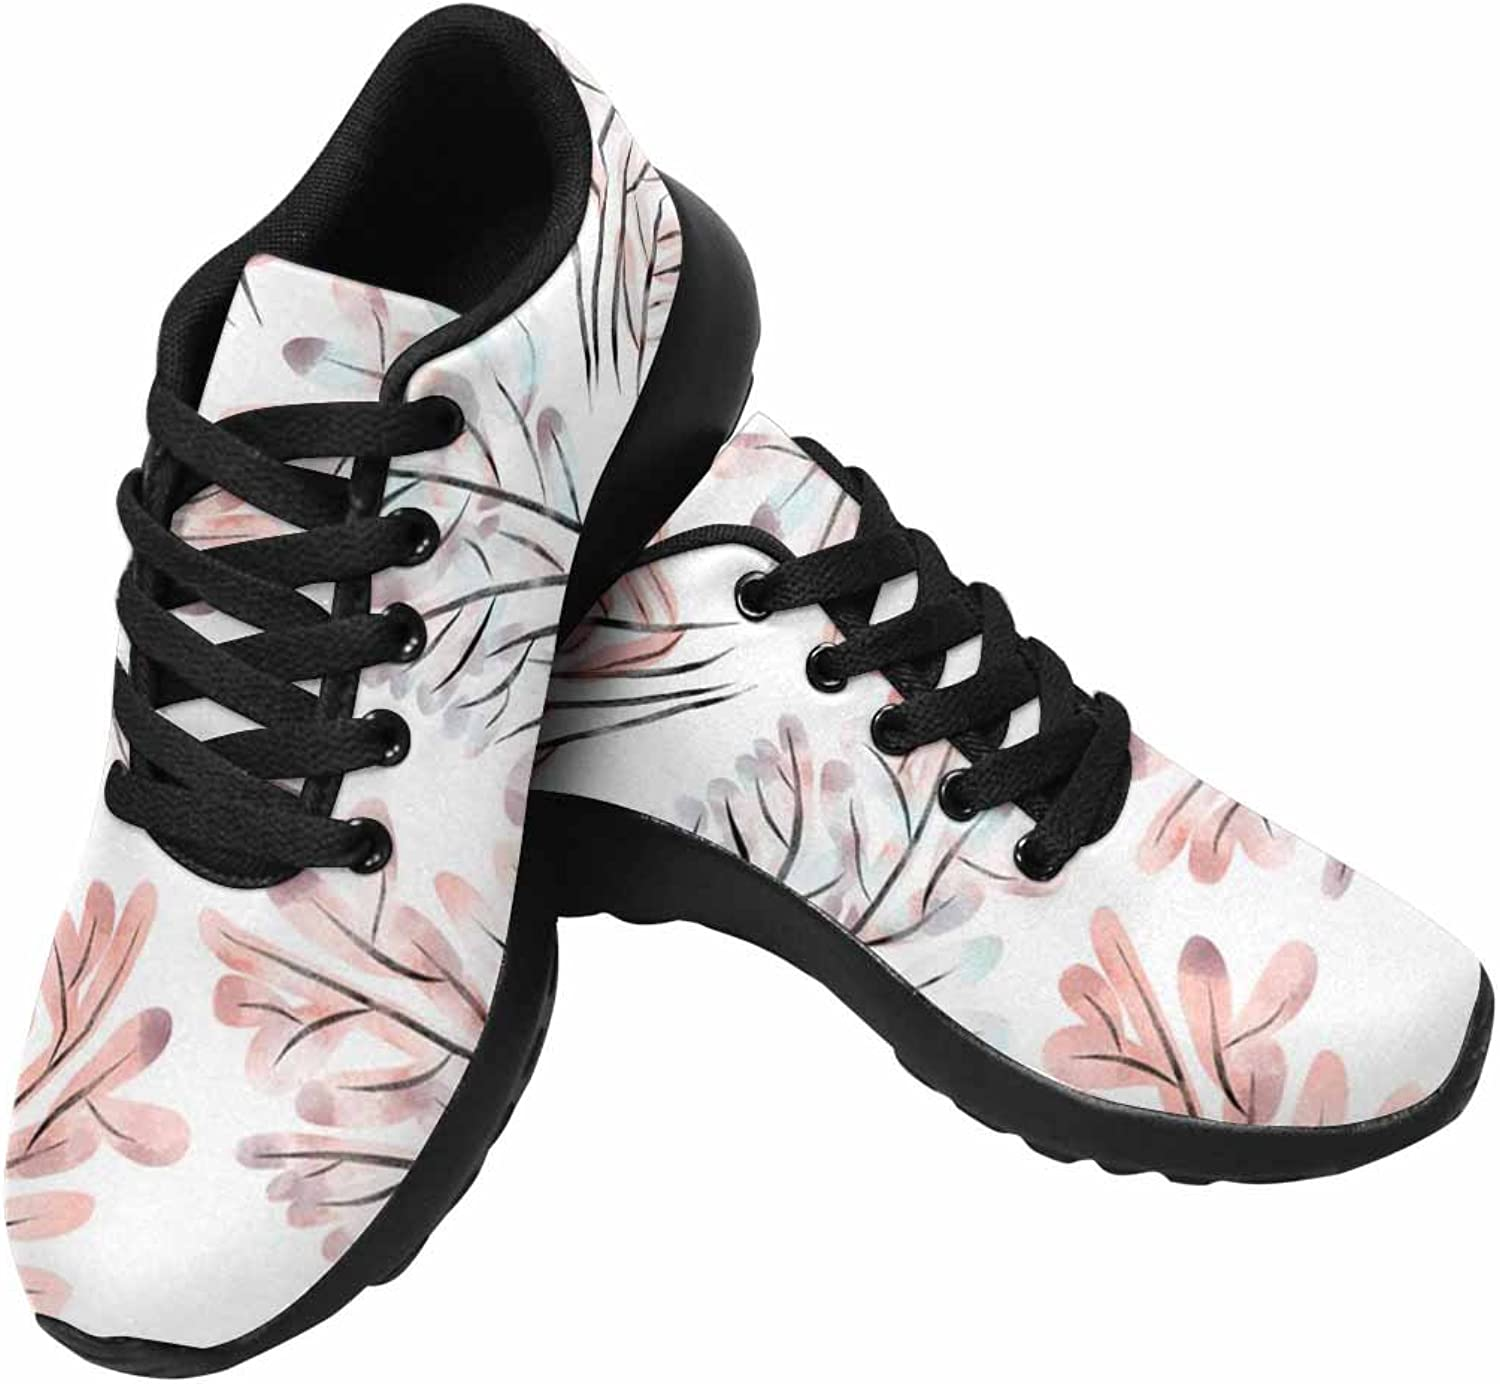 VIC Women's Breathable Running Sneakers Lightweight Sneakers